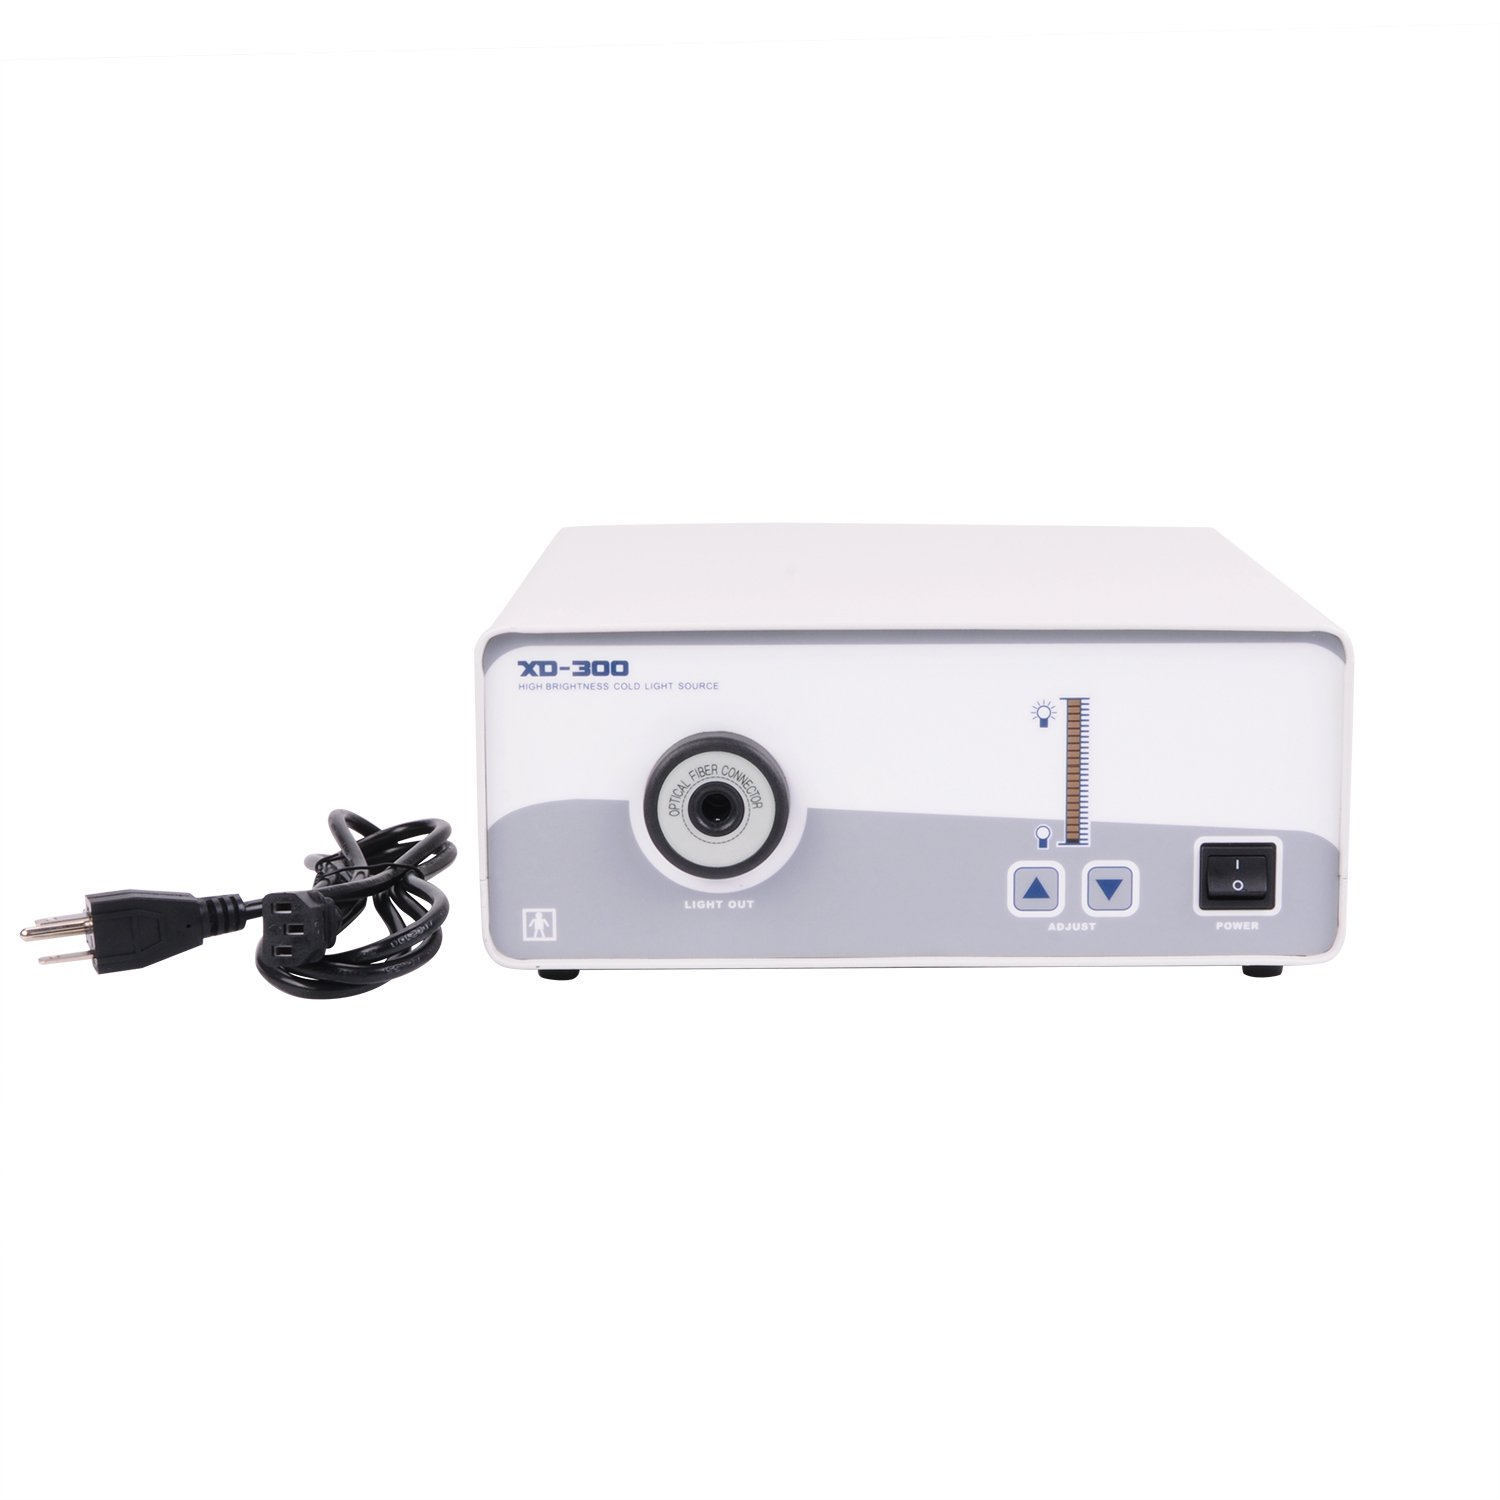 Wotefusi Lab Medical Surgical Dental Power Supply Brand New XD-300-250W Single Xenon Cold Light Source 110V